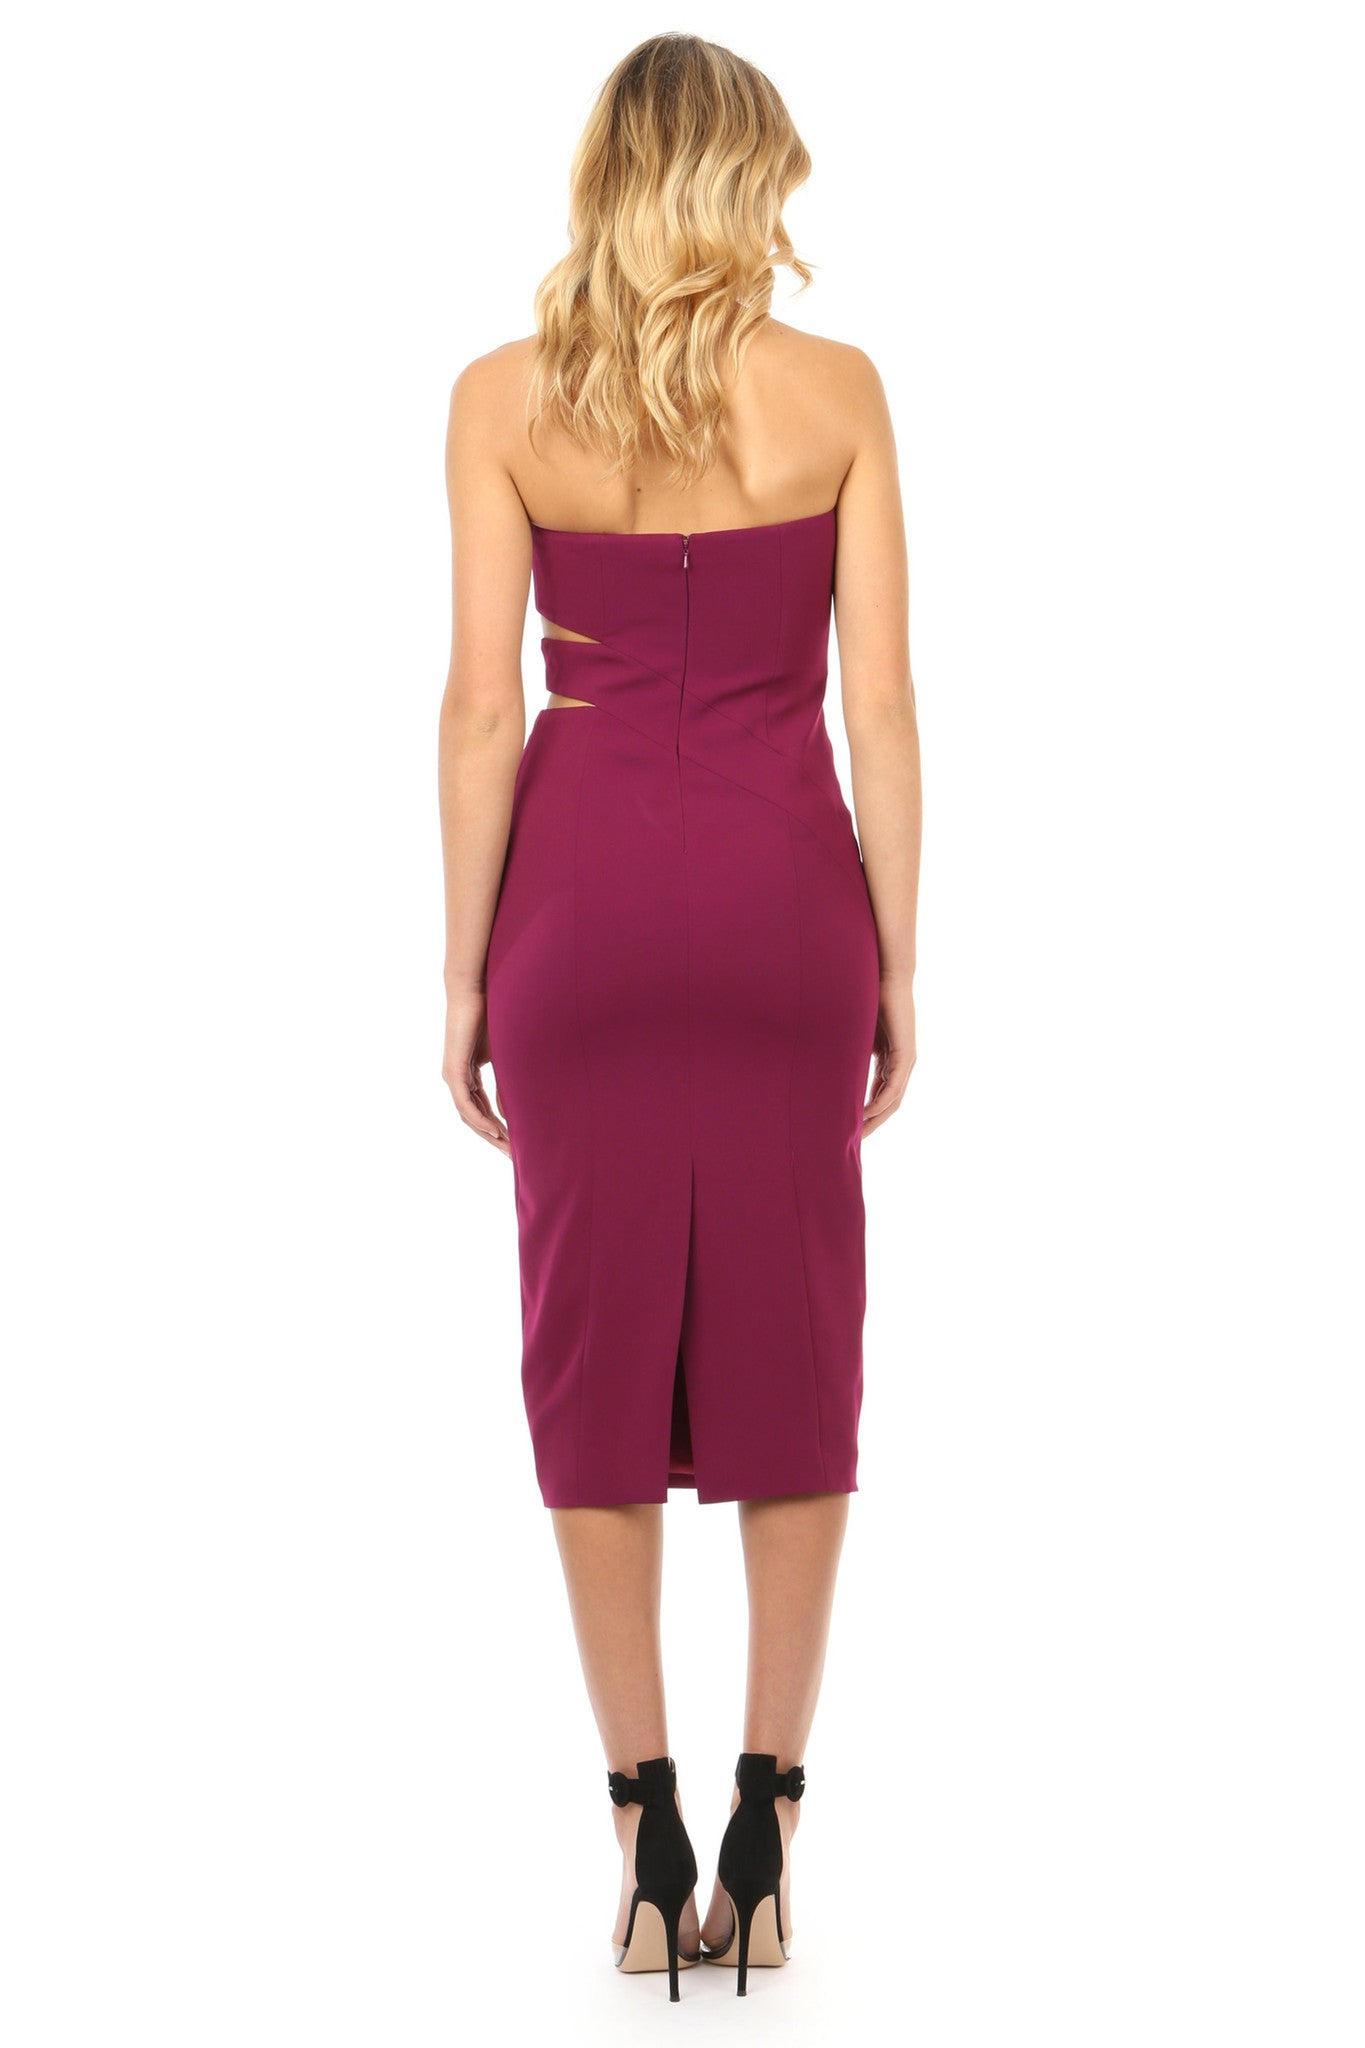 Jay Godfrey Plum Strapless Cut-Out Midi Dress - Back View